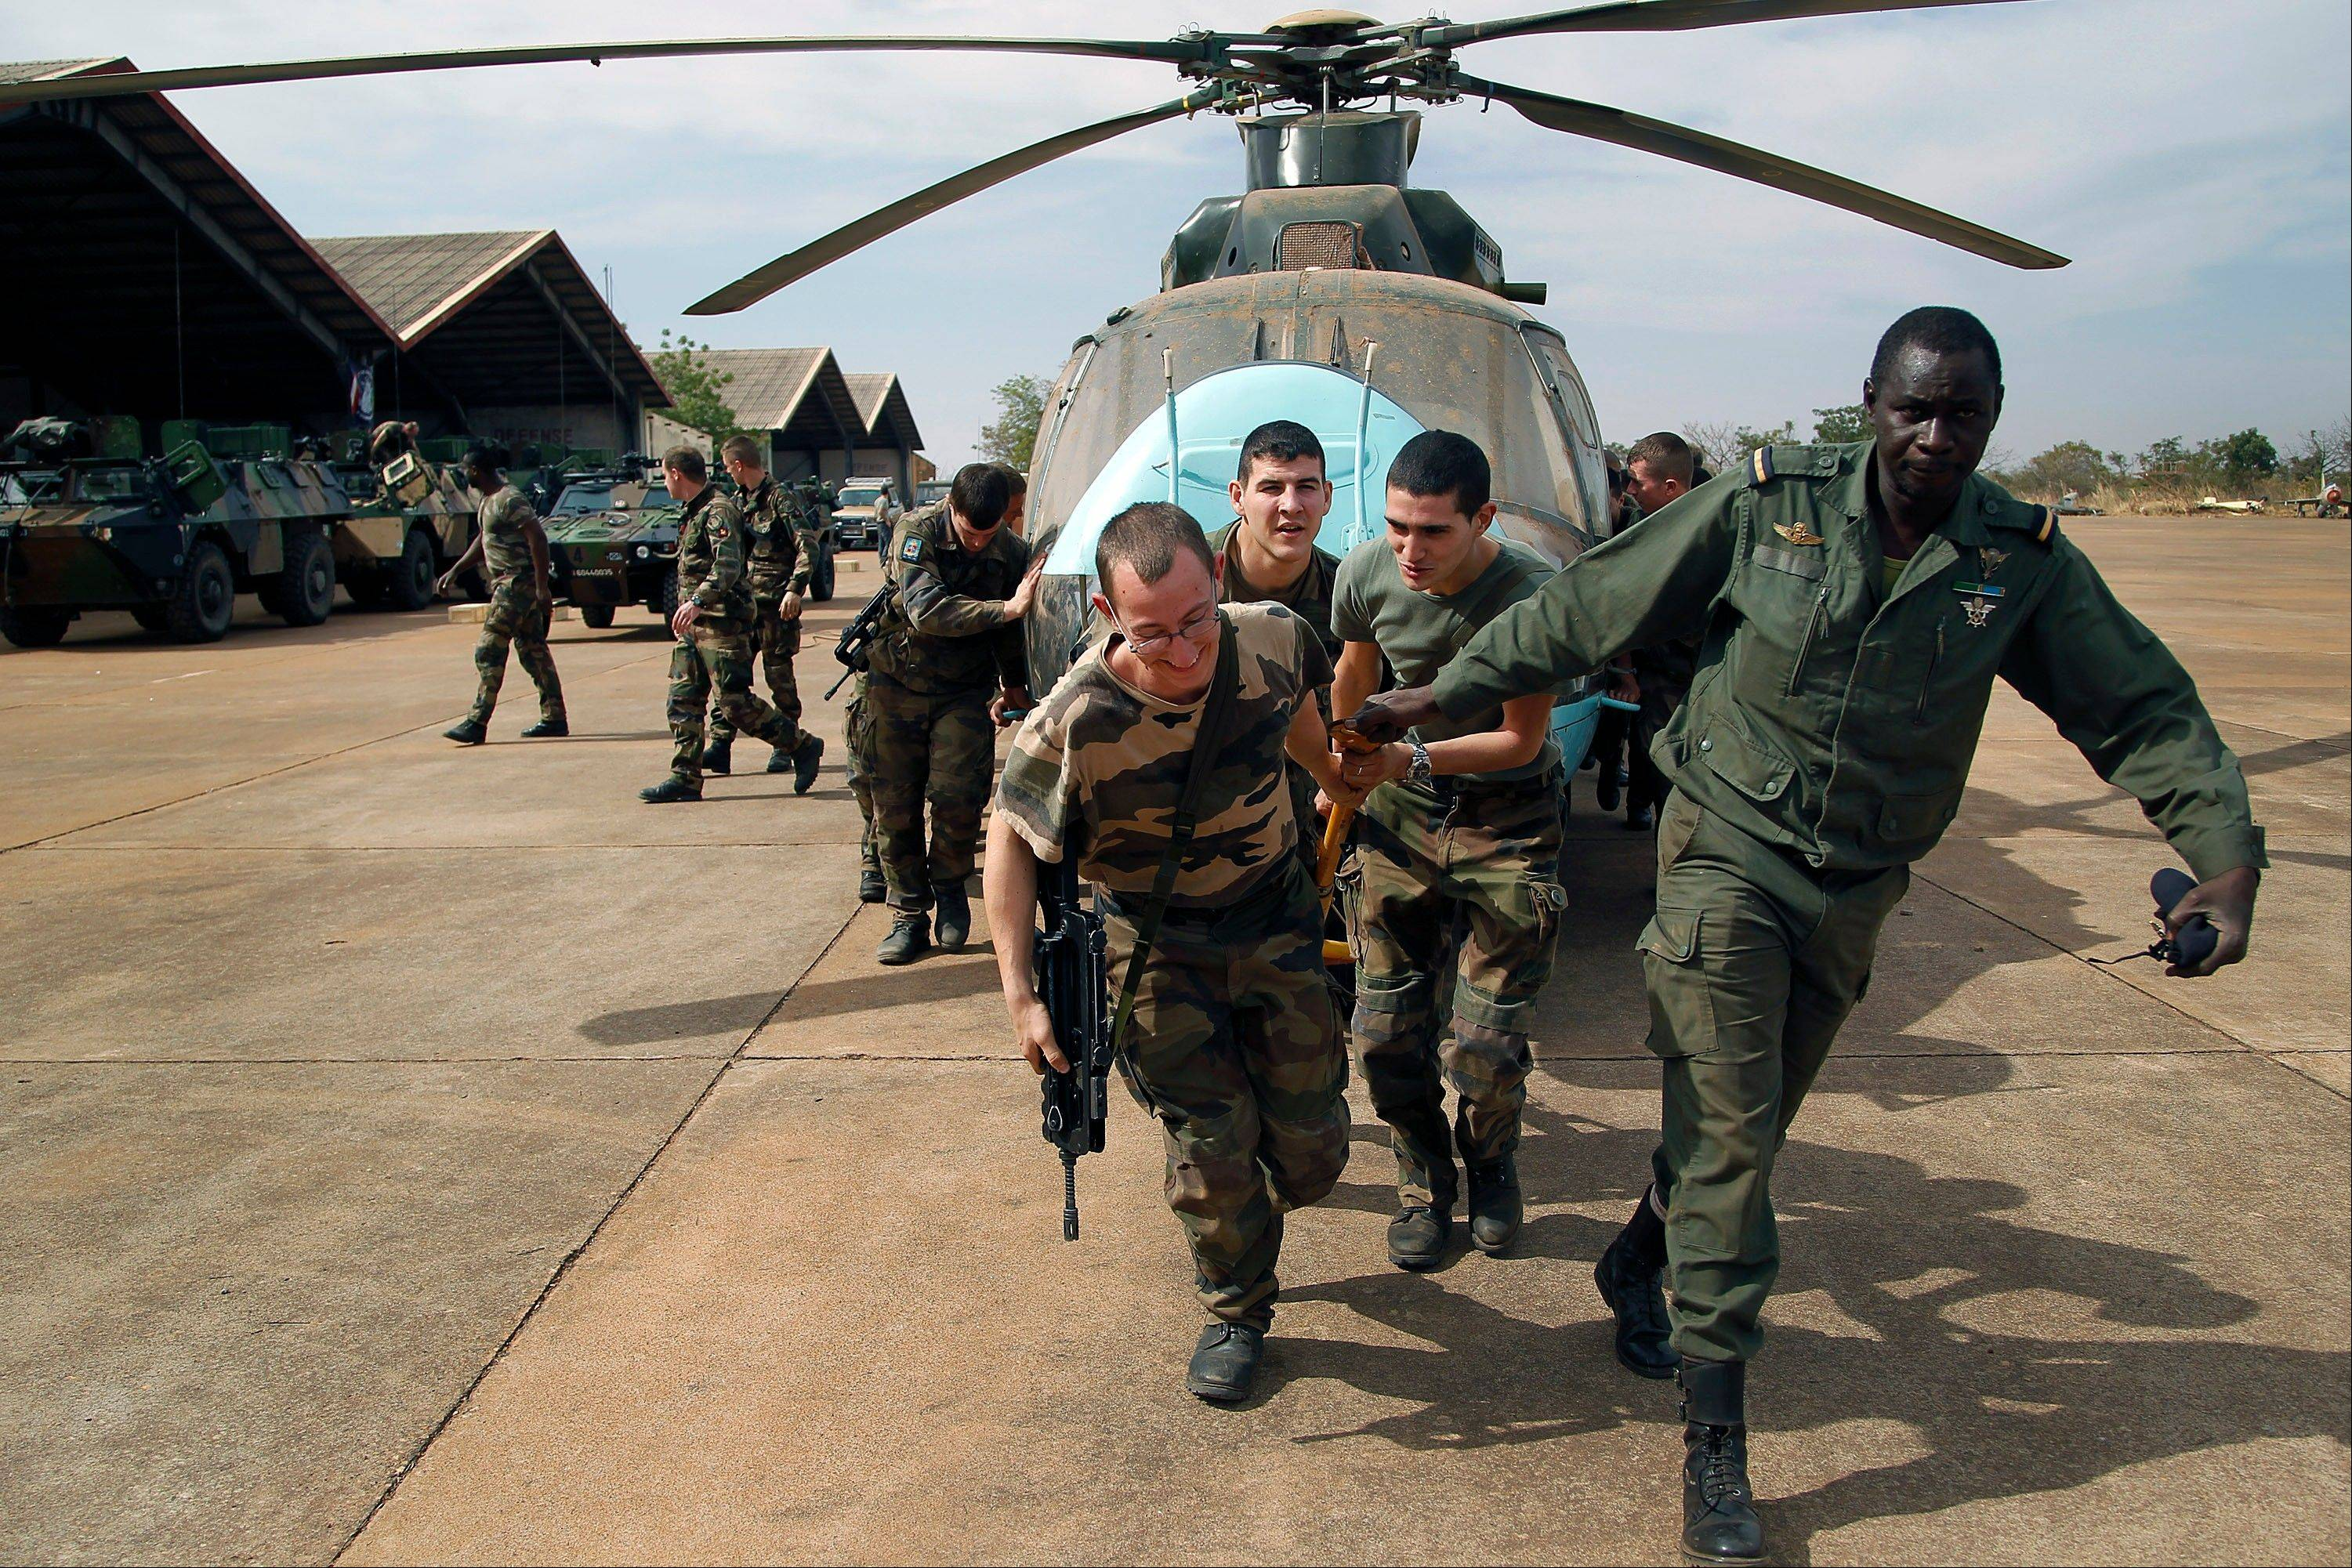 Malian soldiers helped by French troops, move a broken helicopter out a hangar to make room for more incoming troops at Bamako's airport Tuesday.